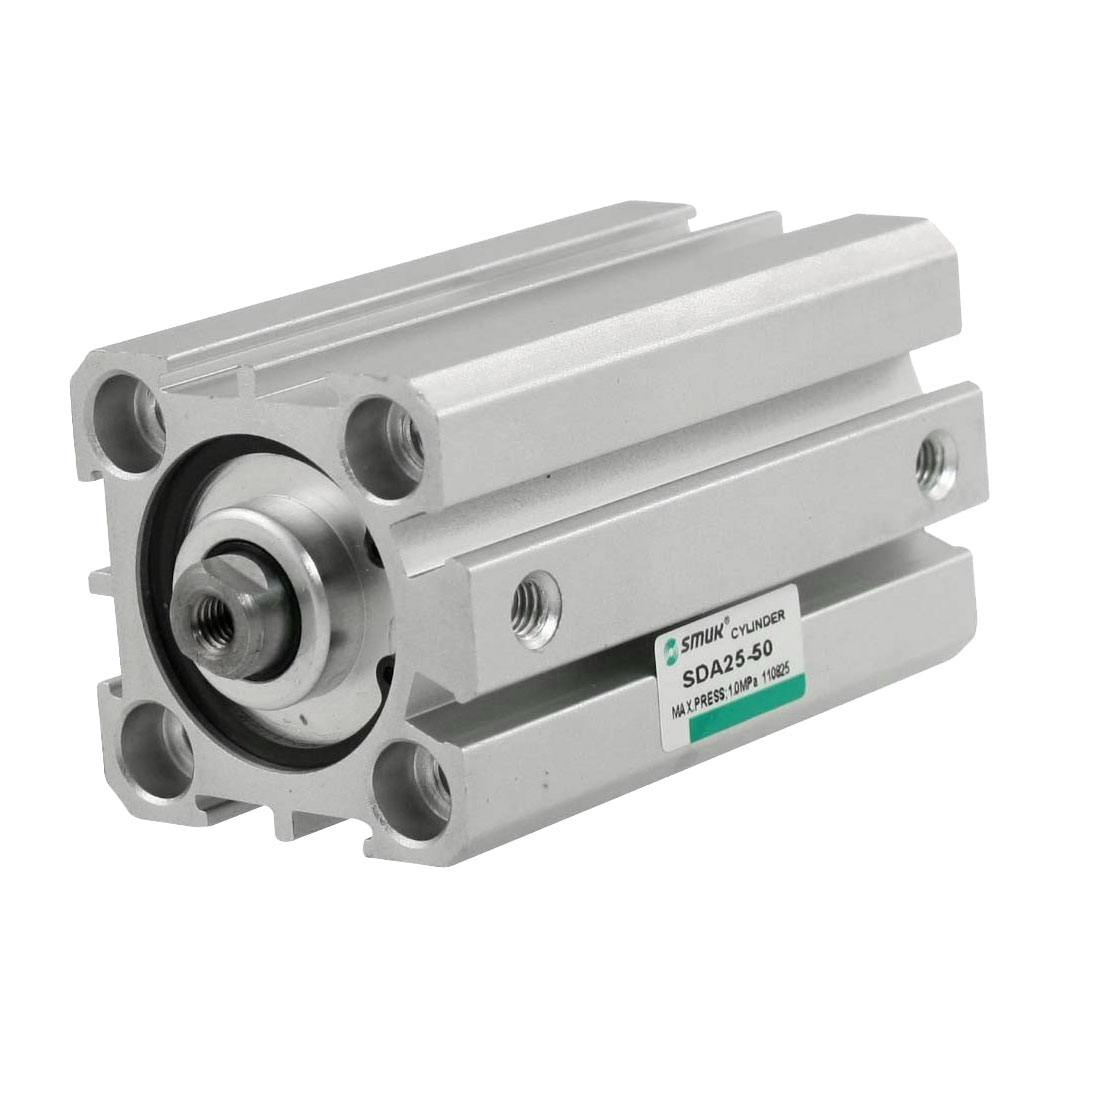 SDA25-50 25mm Bore 50mm Stroke Thin Type Compact Air Cylinder